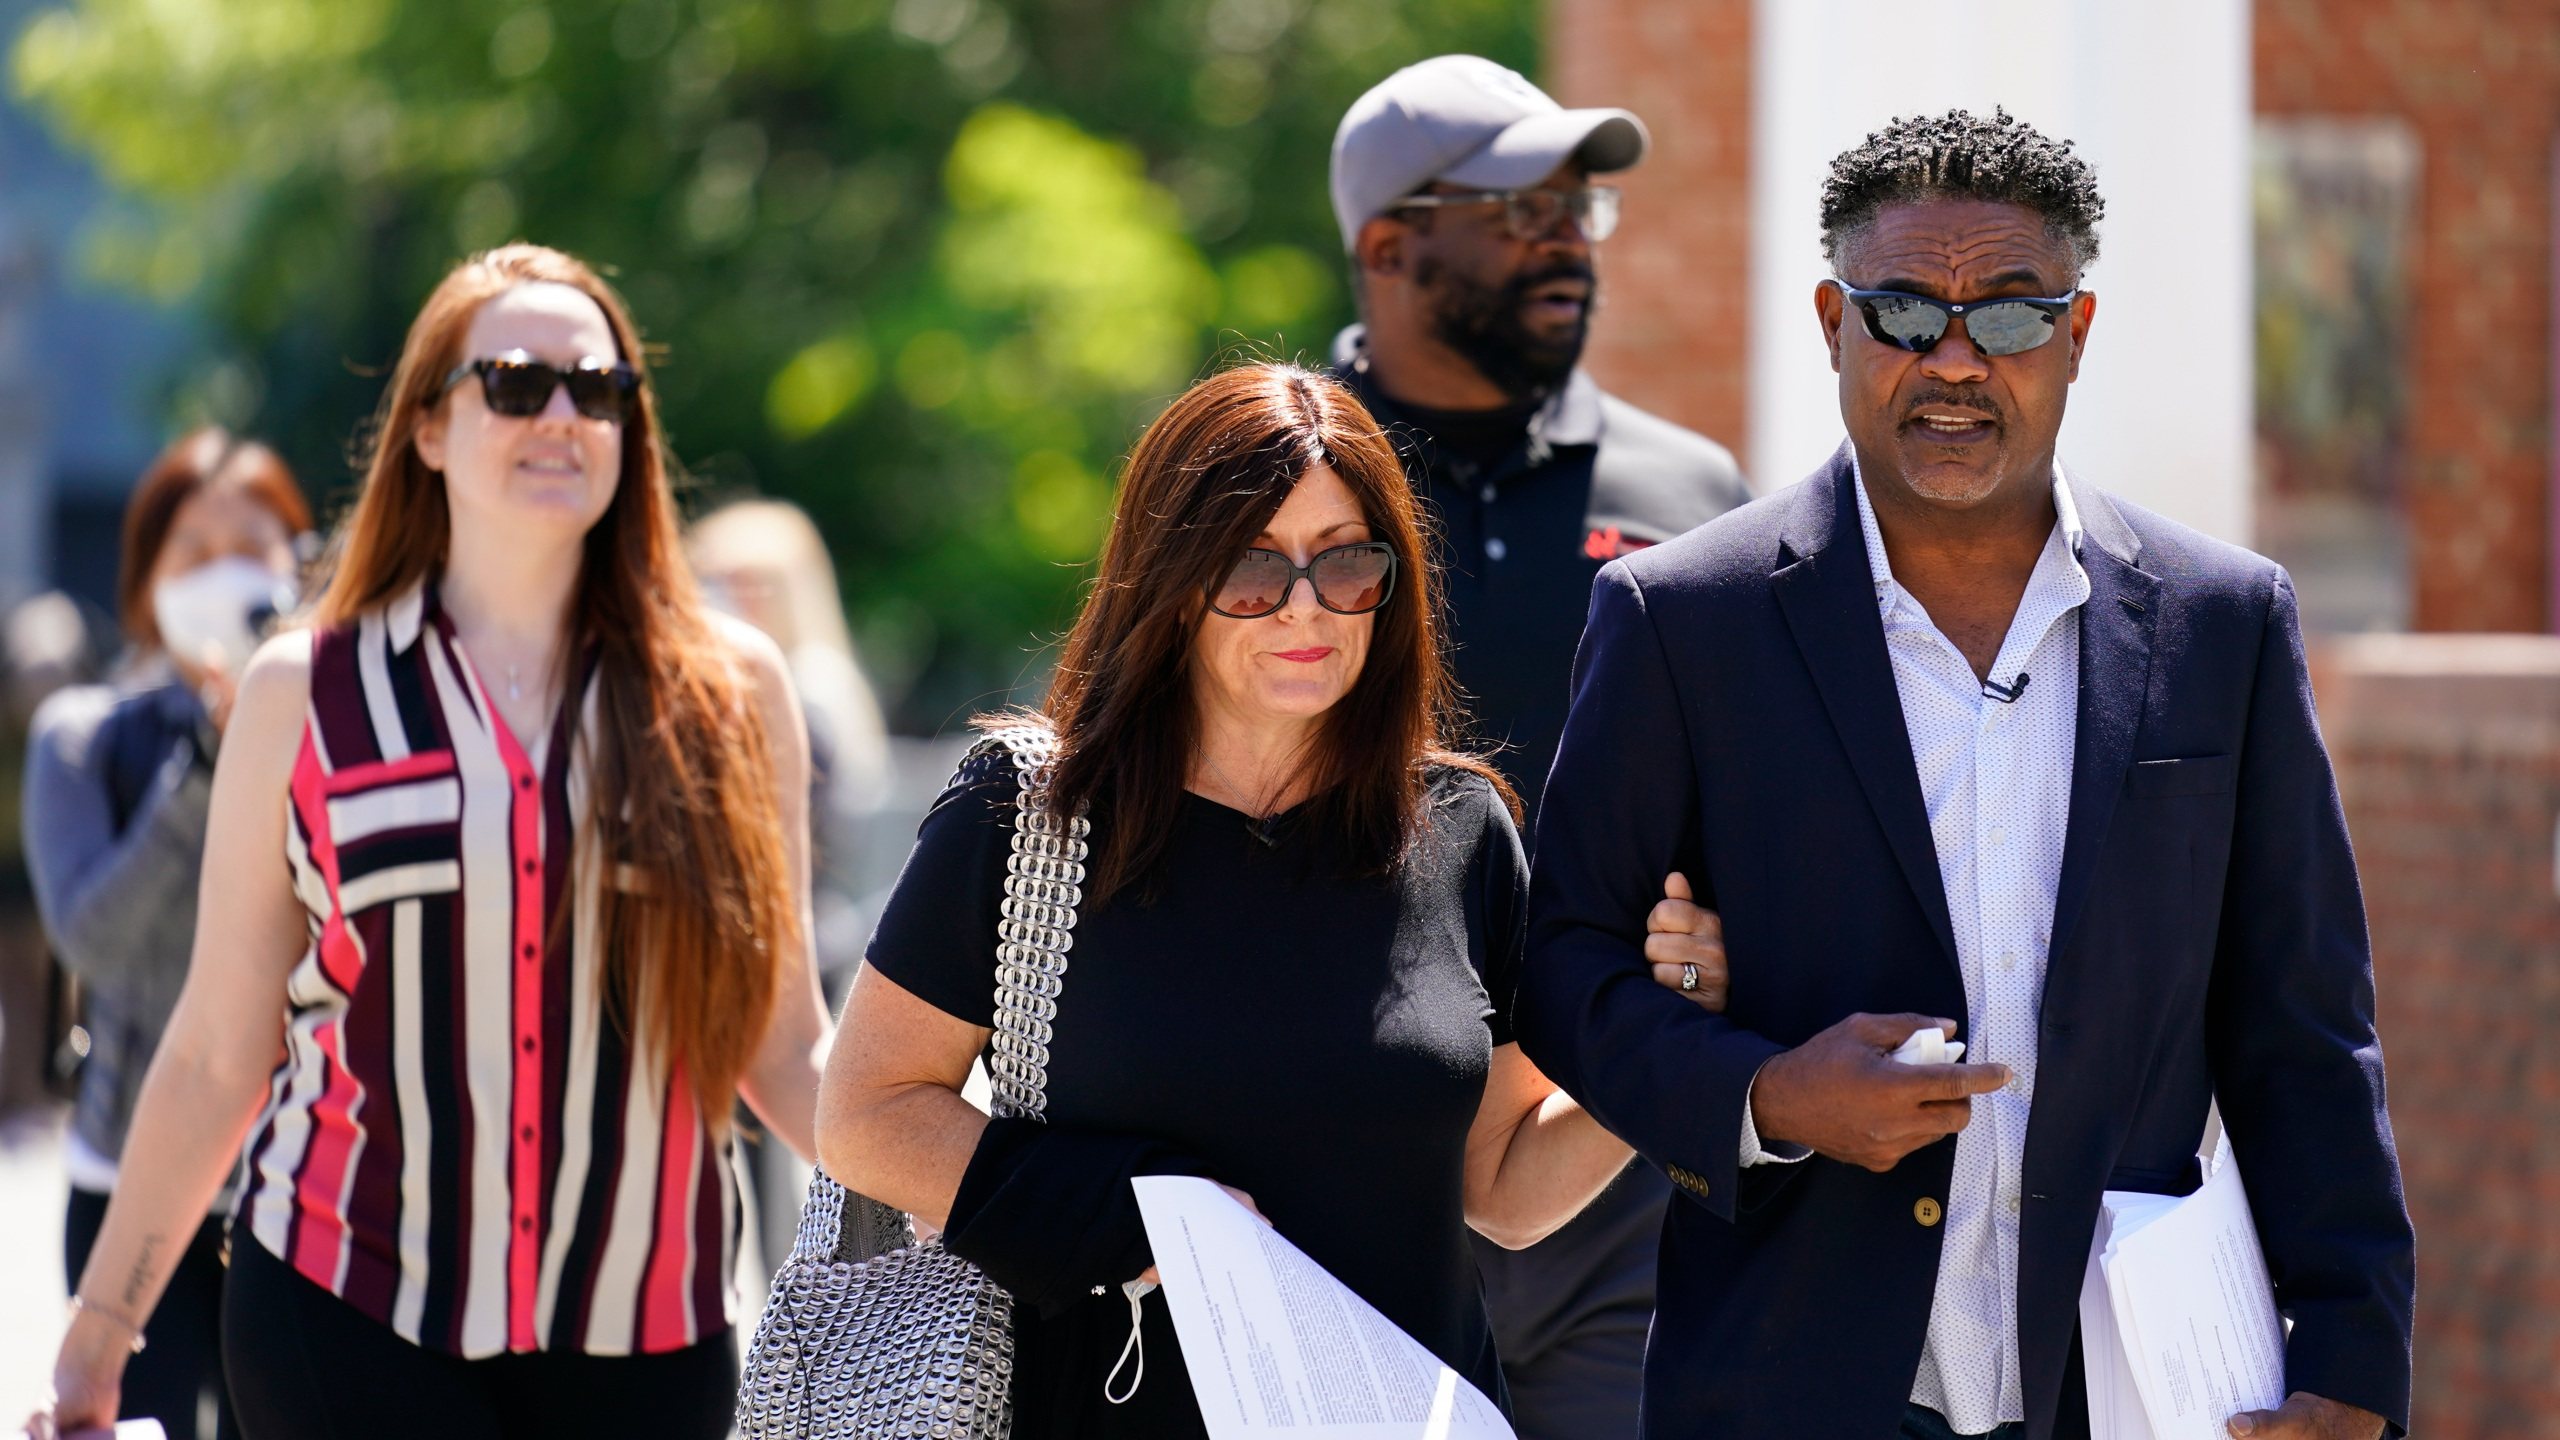 In this May 14, 2021, file photo, former NFL players Ken Jenkins, right, and Clarence Vaughn III, center right, along with their wives, Amy Lewis, center, and Brooke Vaughn, left, carry petitions demanding equal treatment for everyone involved in the settlement of concussion claims against the NFL, to the federal courthouse in Philadelphia on May 14, 2021. (Matt Rourke/Associated Press)